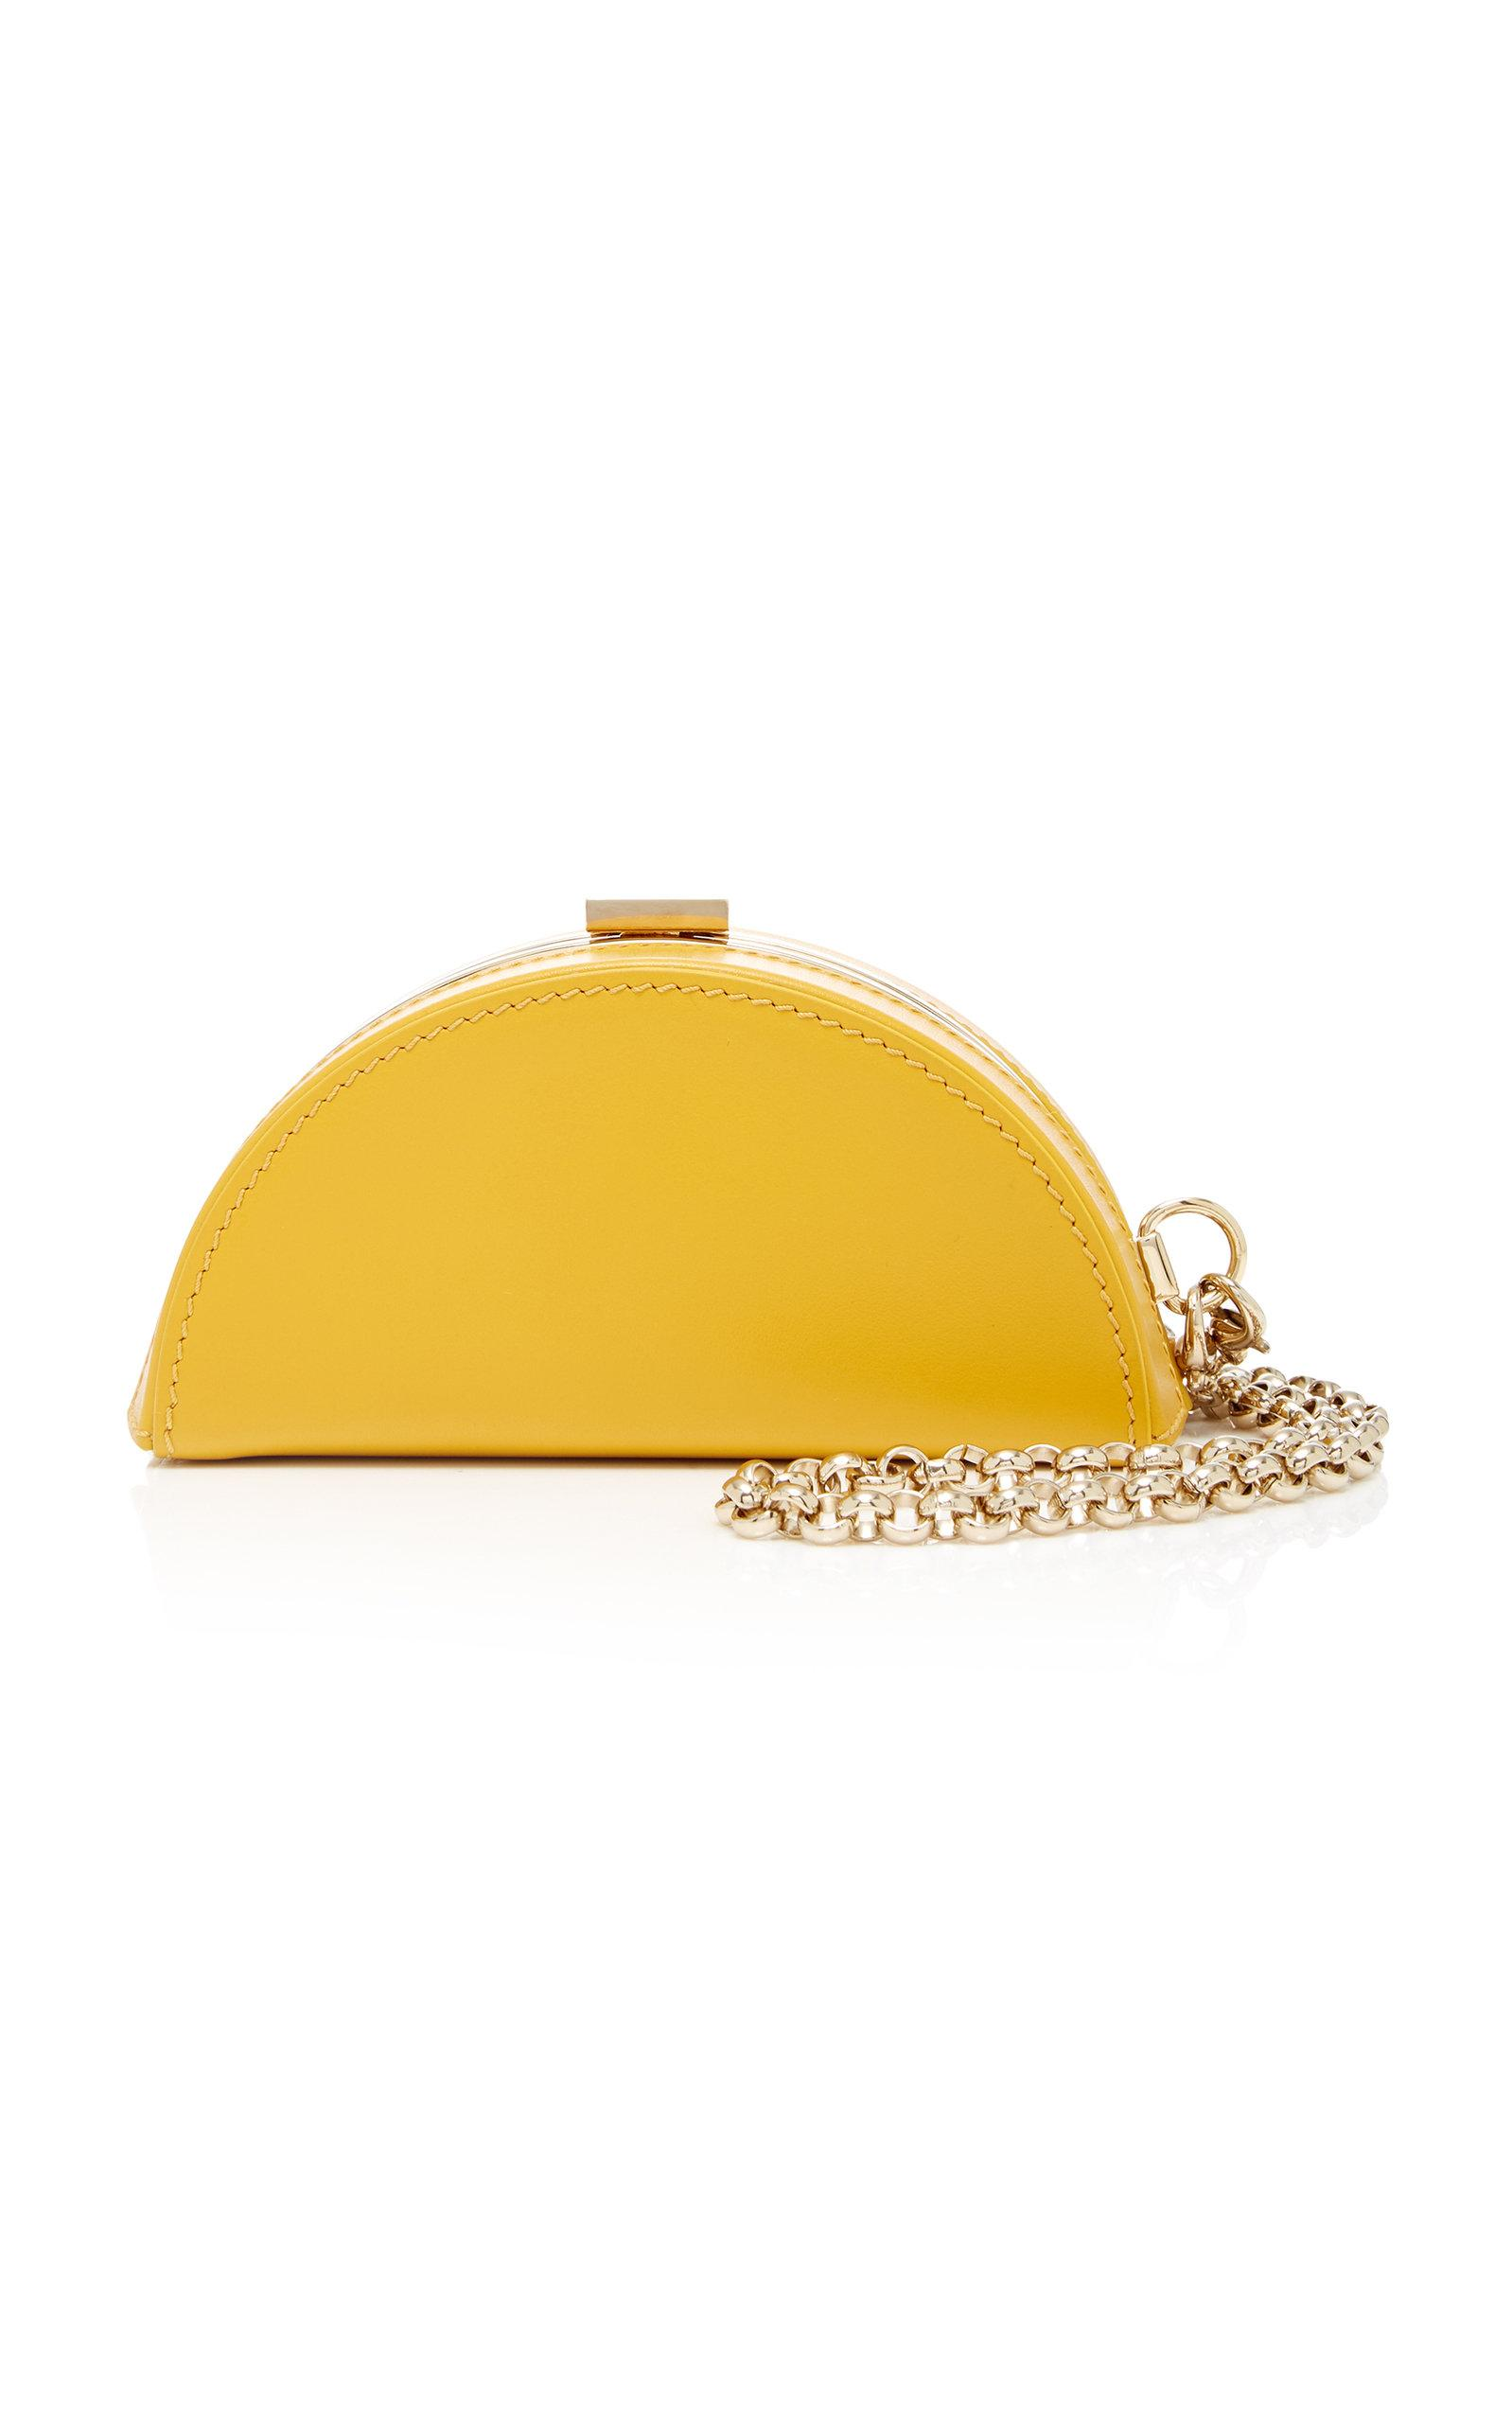 Adeam Half Moon Clutch Mini In Yellow